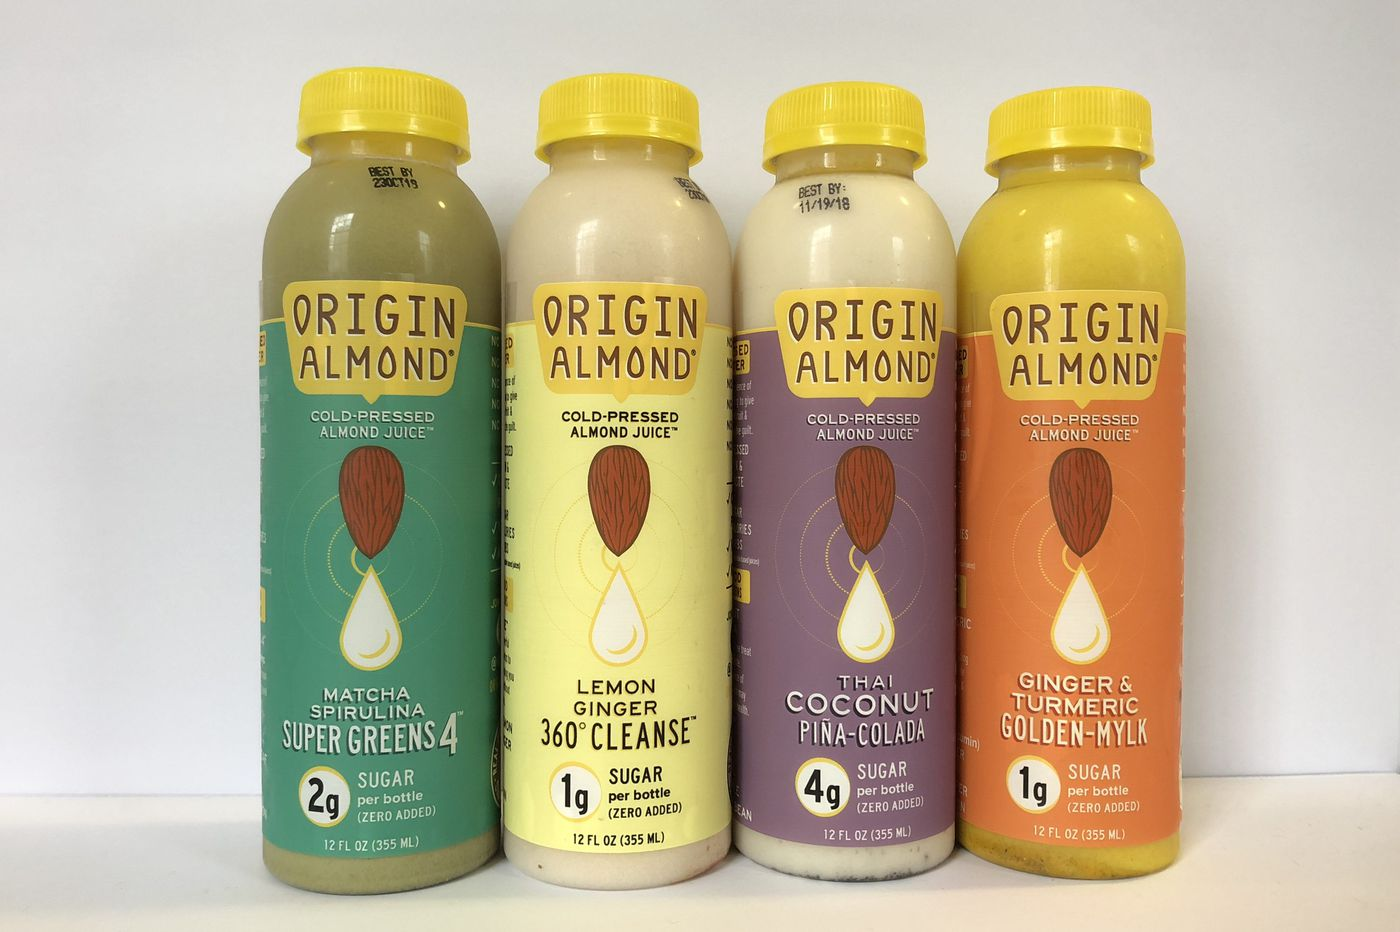 Made from almonds, juices that taste like lemonade or piña coladas